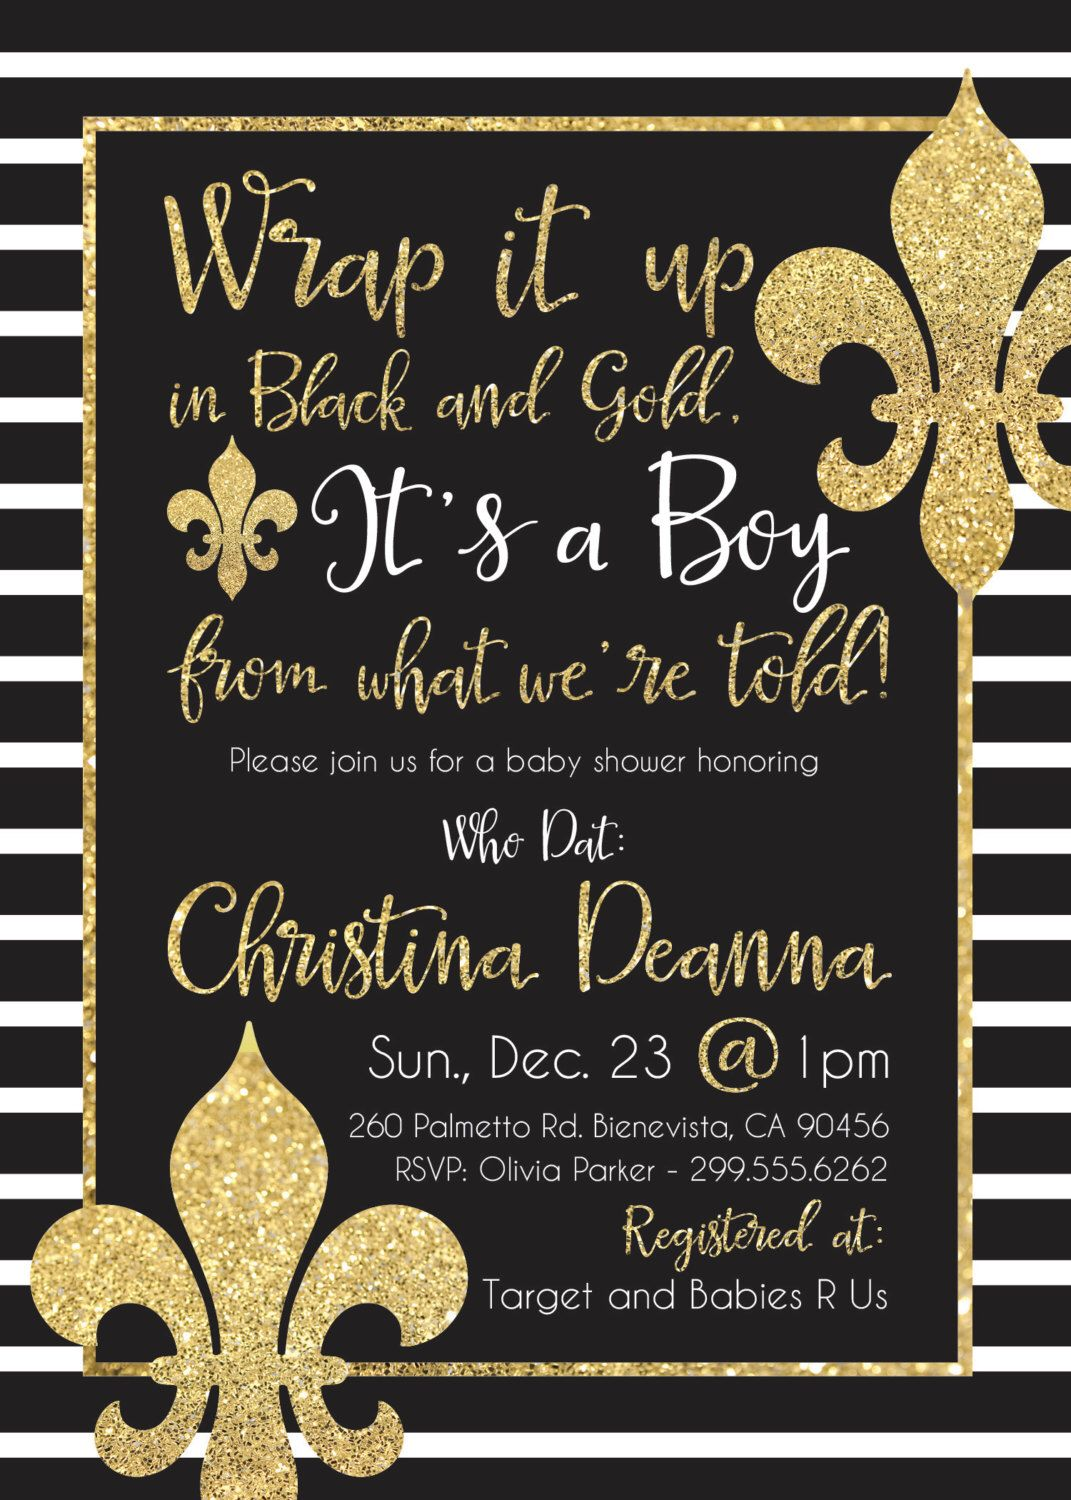 New Orleans Saints Who Dat Black And Gold Baby Shower Invite DIY Printable  By LilPineappleStudios On